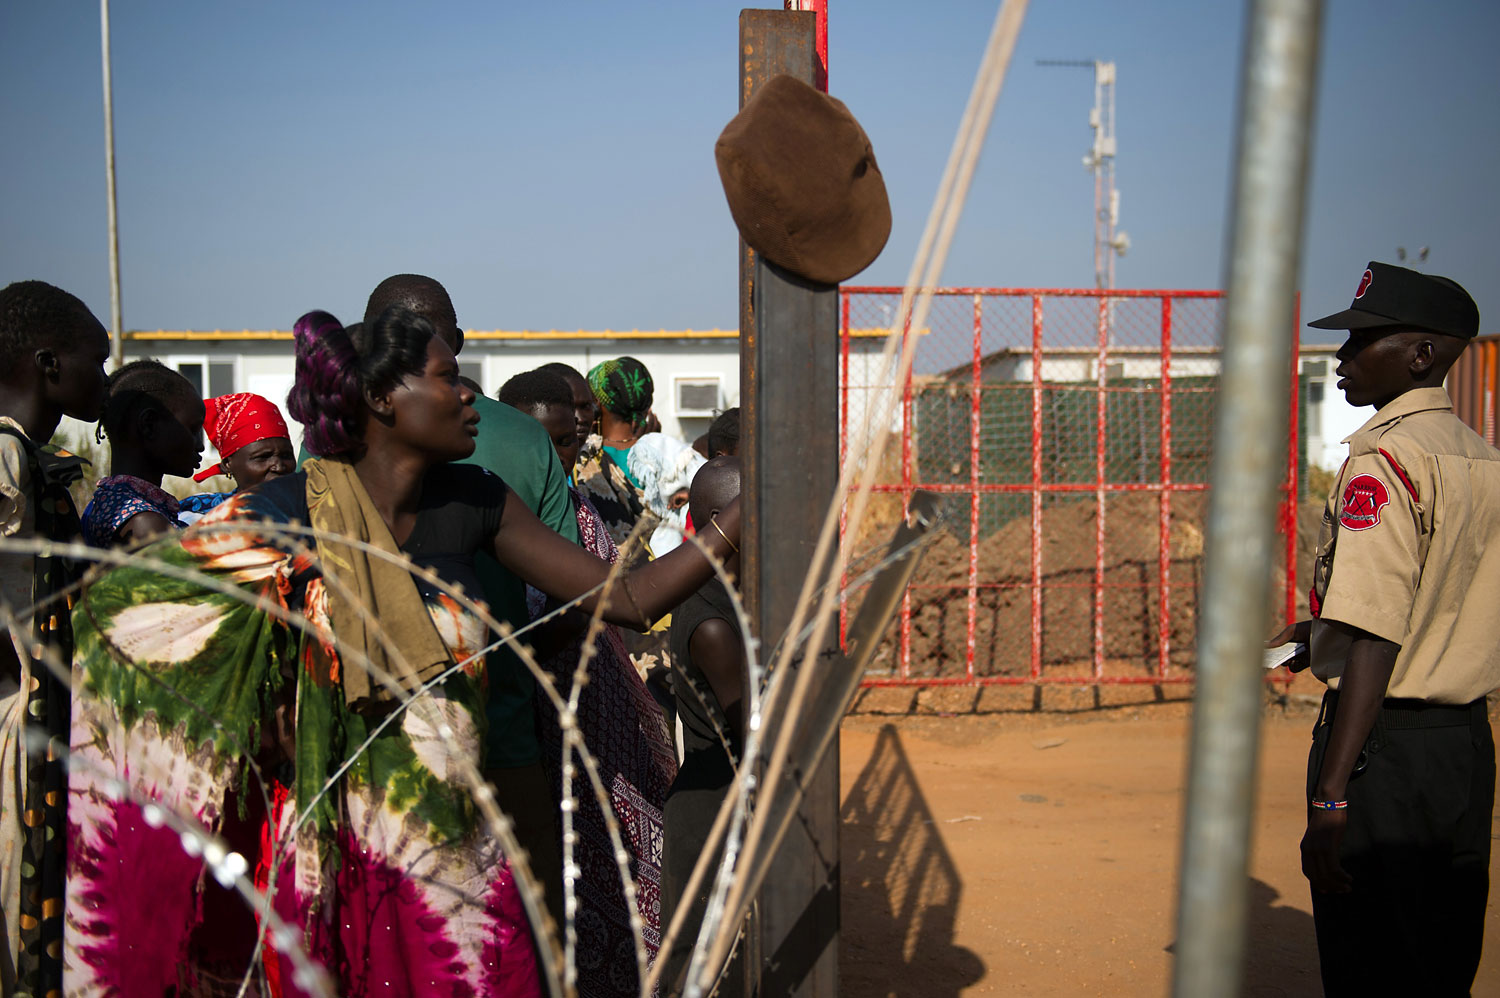 People stand at the gates of a spontaneous camp for internally displaced persons at the United Nations Mission to South Sudan base in Juba, South Sudan, on Jan. 9, 2014. Over 17,000 people are living at the base, with new arrivals every day, due to ongoing conflict in the world's youngest nation.